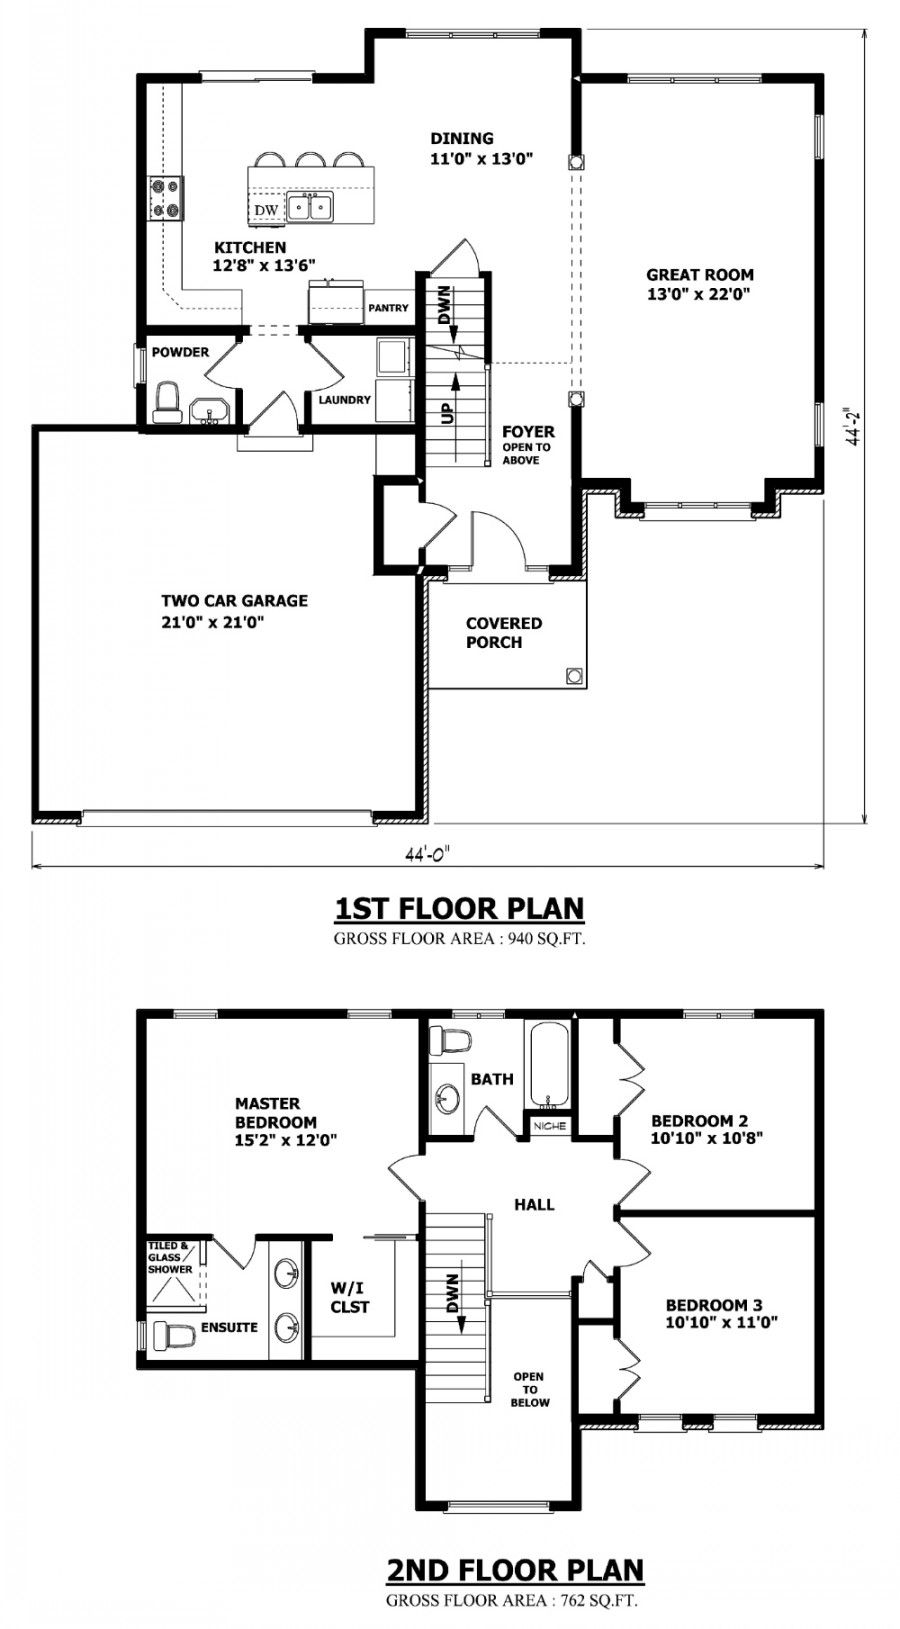 home designs custom house plans stock house plans amp garage plans - Custom Small Home Plans